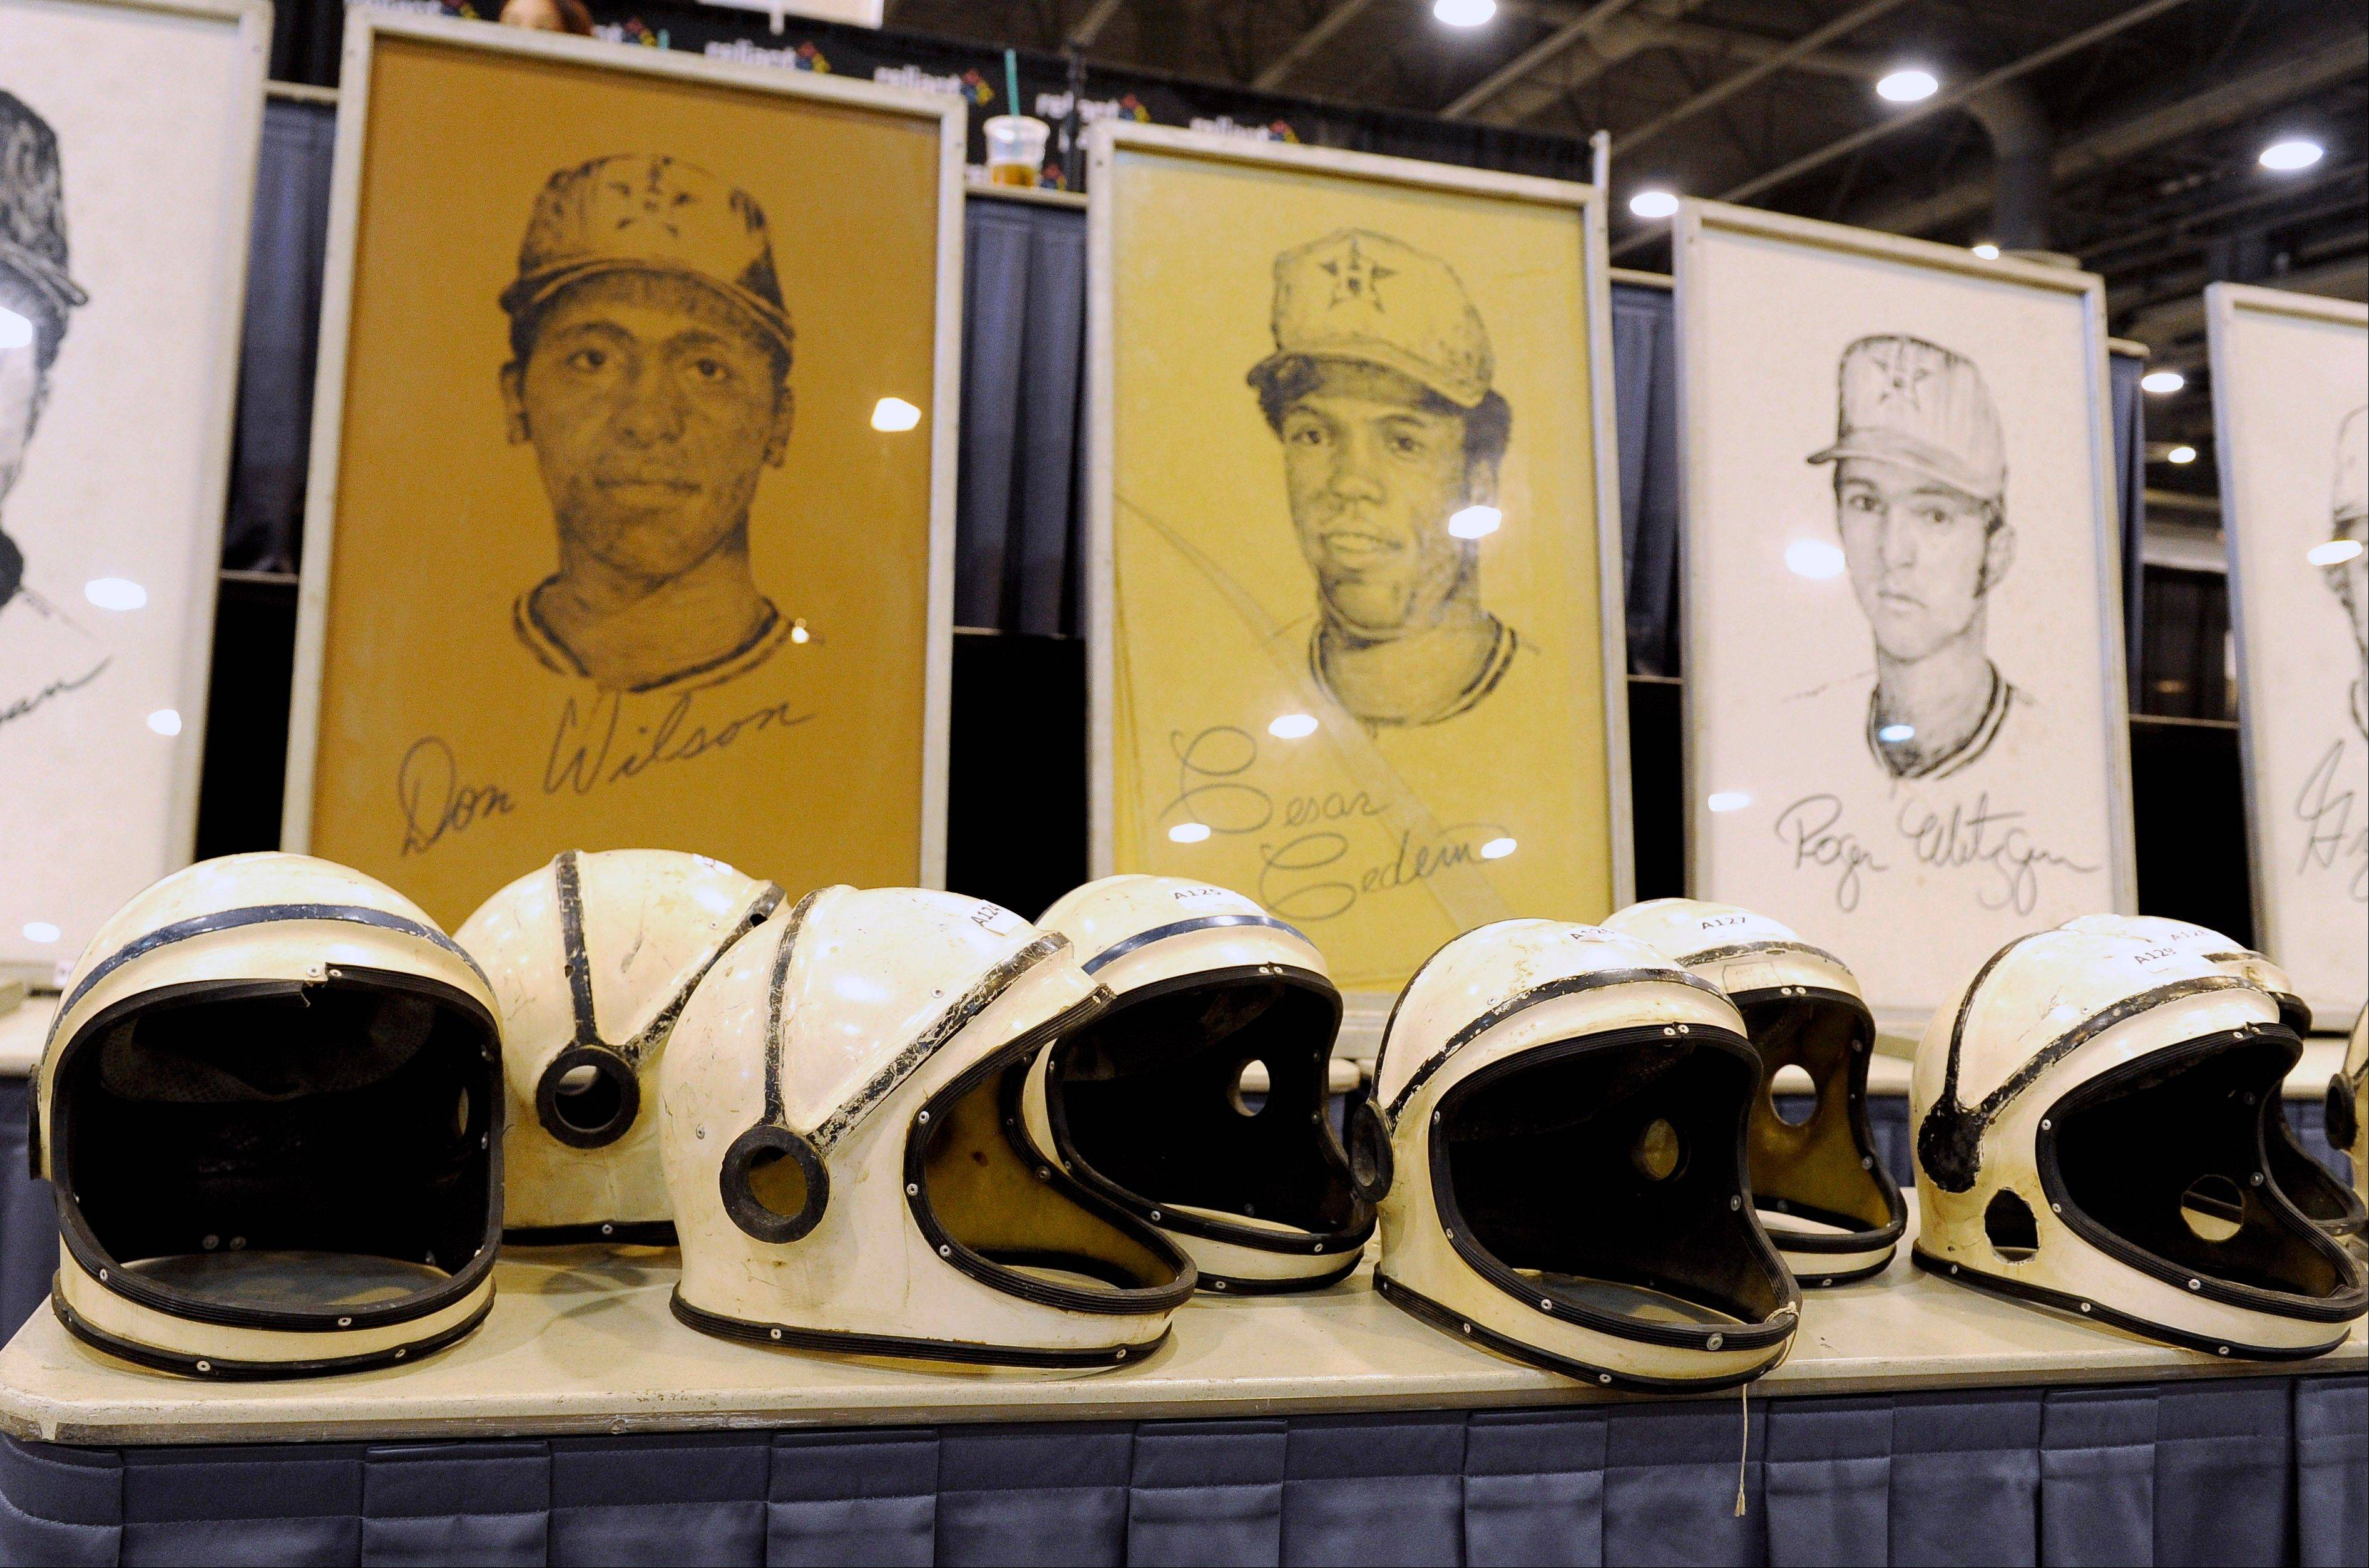 Space helmets worn by the grounds crew in the early years of the Houston Astrodome are lined up Saturday in front of drawings of former Houston Astros players at the Reliant Center in Houston. A sale and auction of Houston Astrodome furniture, appliances, Astroturf and staff uniforms was held Saturday. The Astrodome was the world's first multipurpose domed stadium and was once home to the Astros and the Oilers.